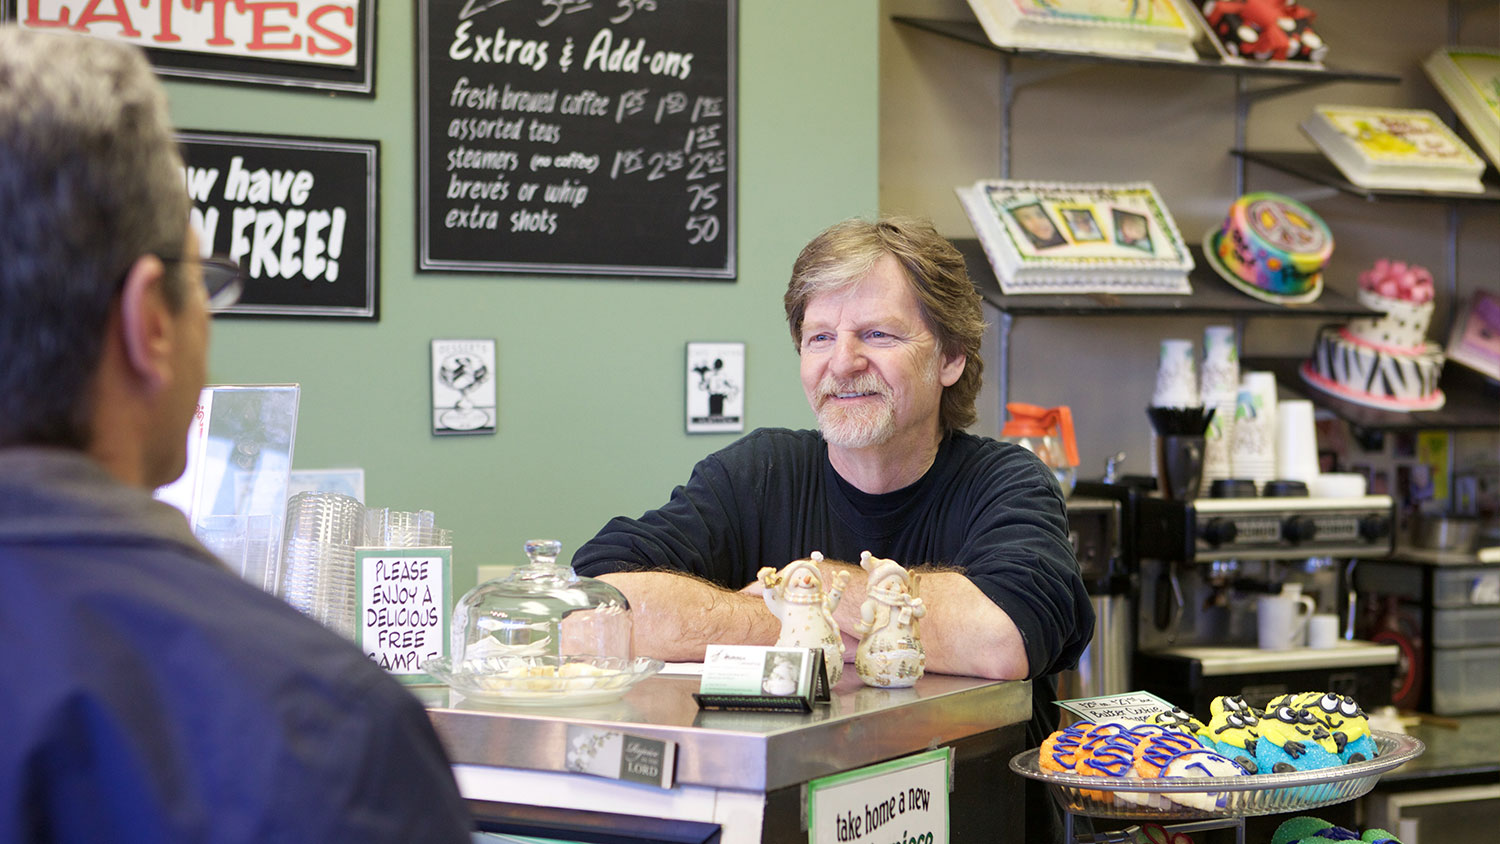 Masterpiece Cakeshop Is Fighting for the First Amendment, Not Against Gay Marriage